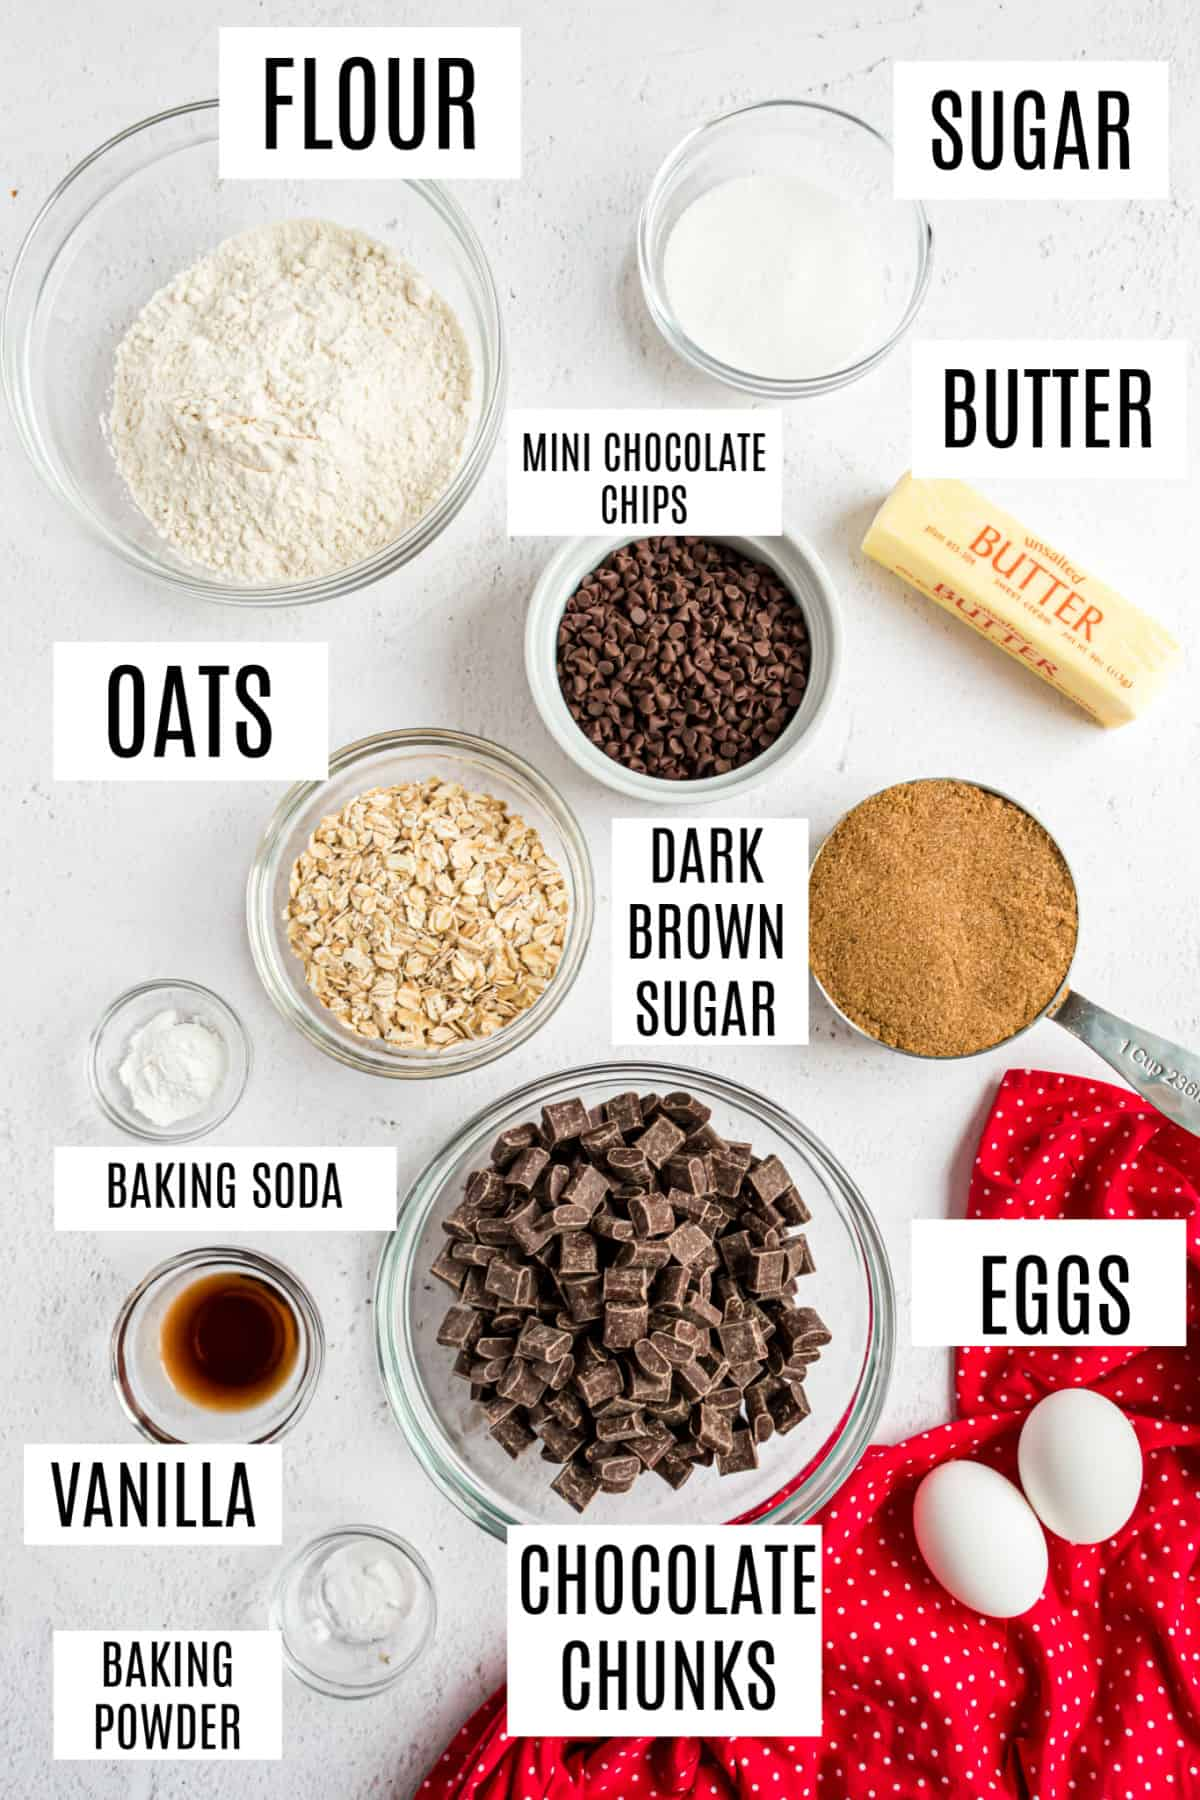 Ingredients needed for chocolate chunk cookies with oatmeal.